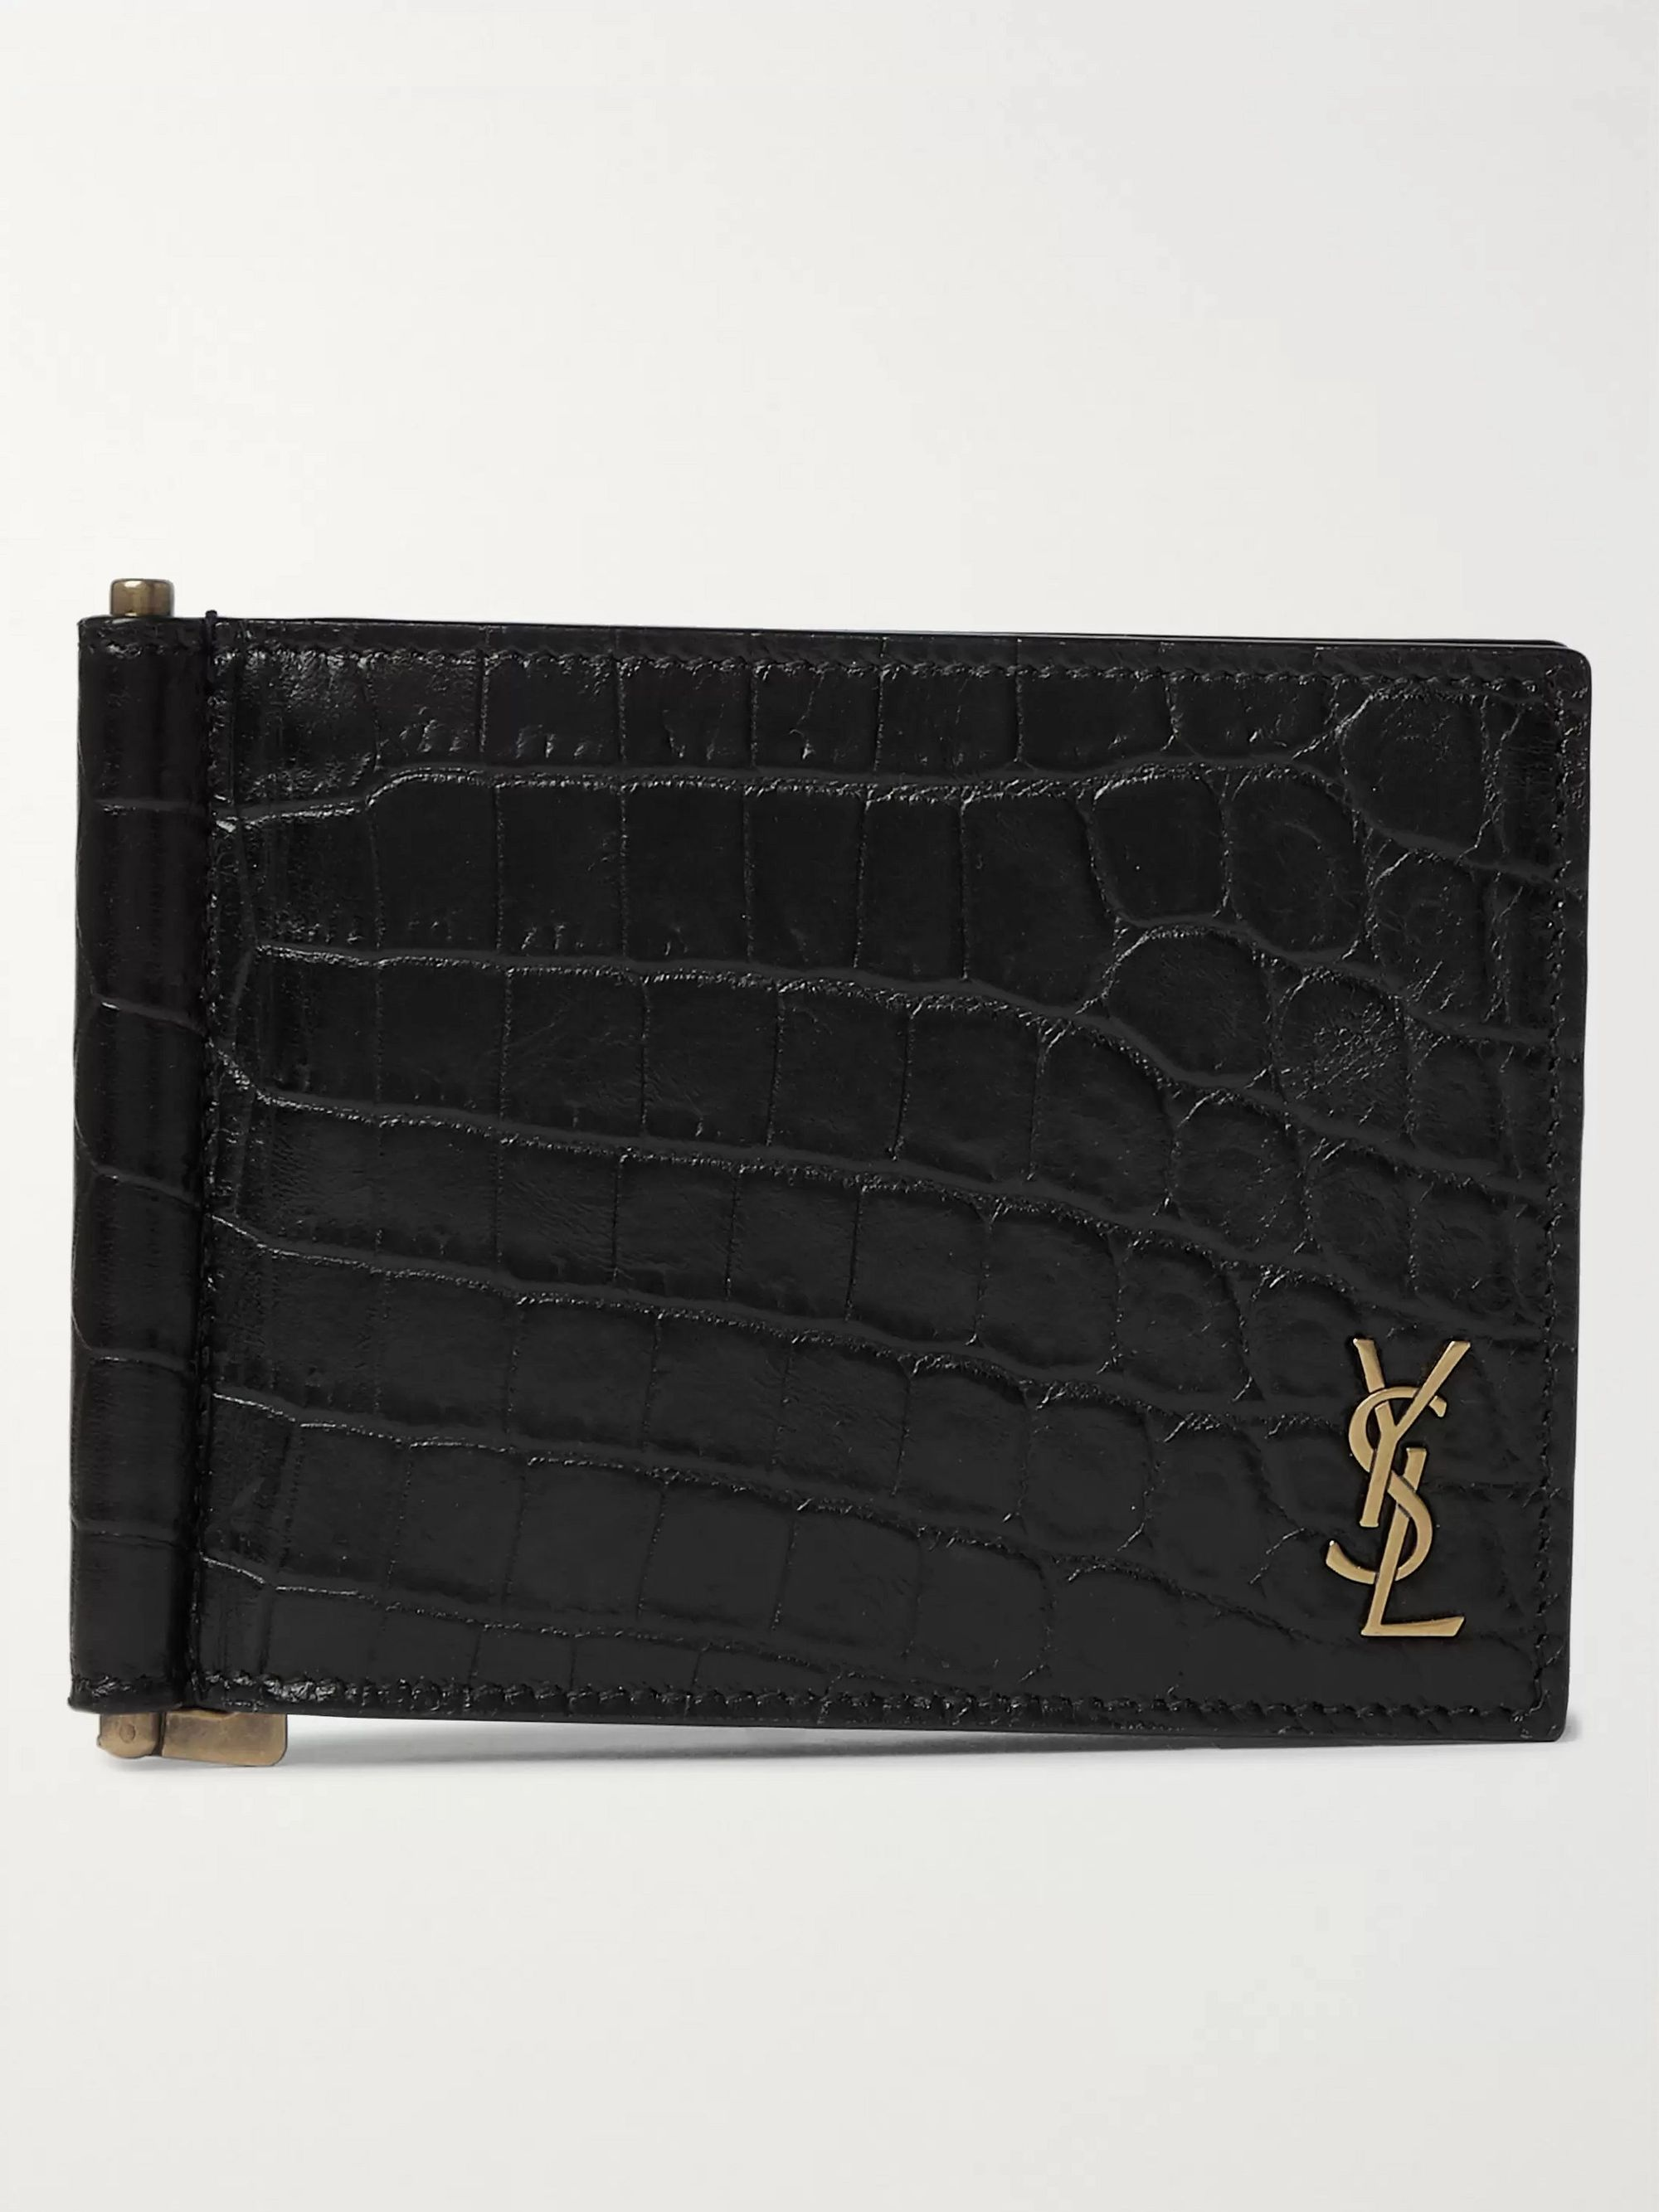 생 로랑 반지갑 Saint Laurent Logo-Appliqued Croc-Effect Leather Billfold Wallet with Money Clip,Black